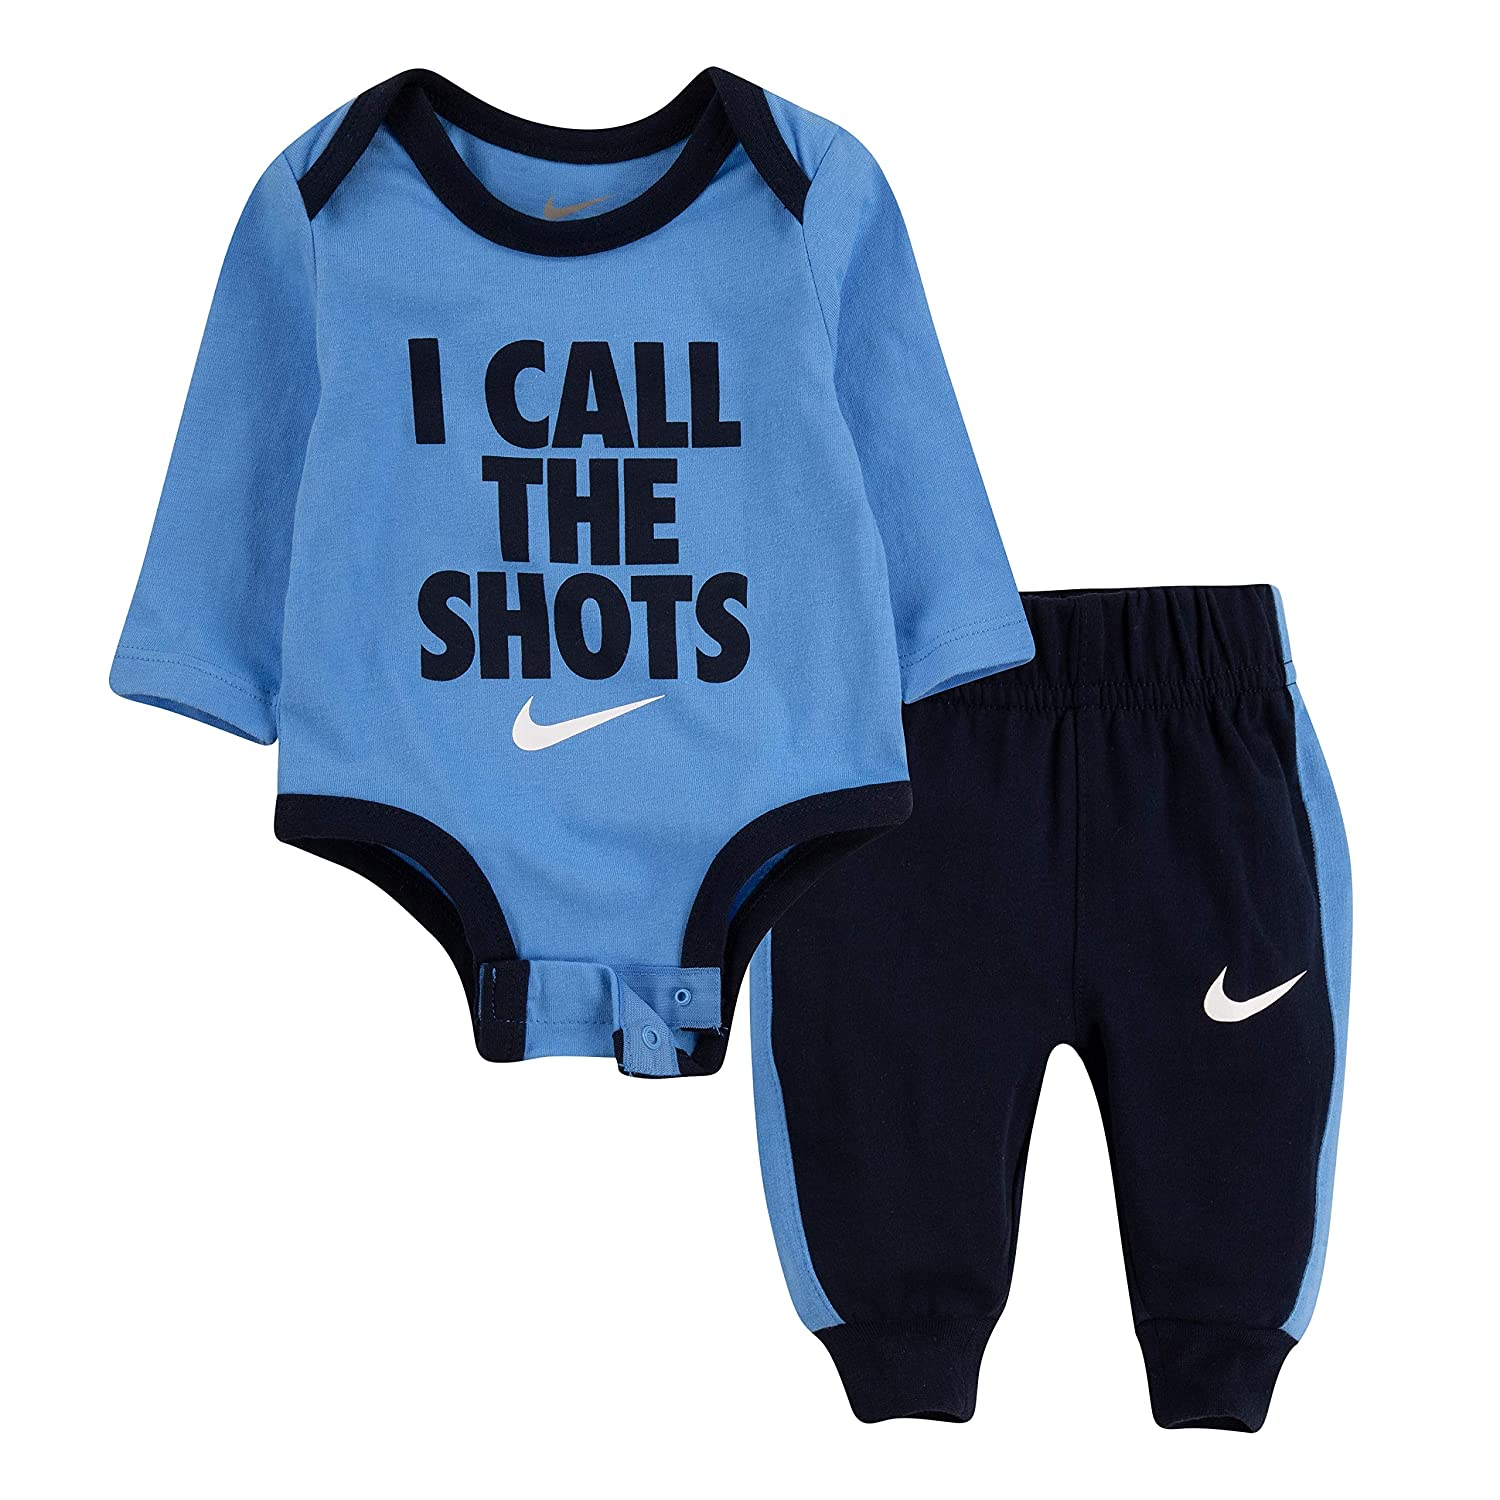 Nike Baby Boys 2-Piece Pant Set Outfit